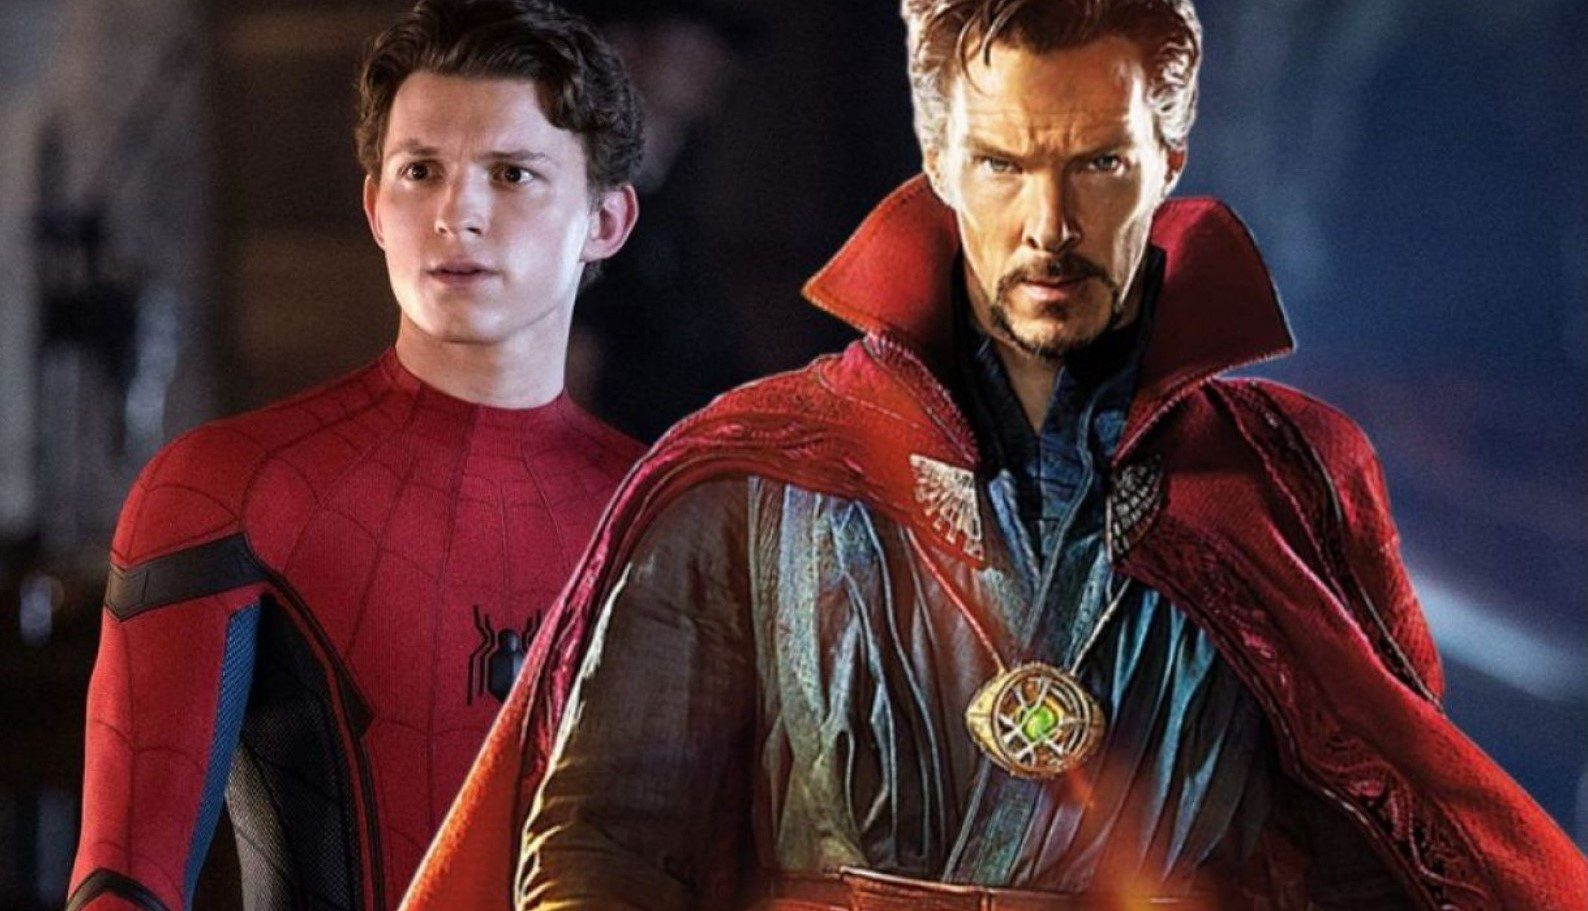 Benedict Cumberbatch's Doctor Strange will appear in Spider-Man 3